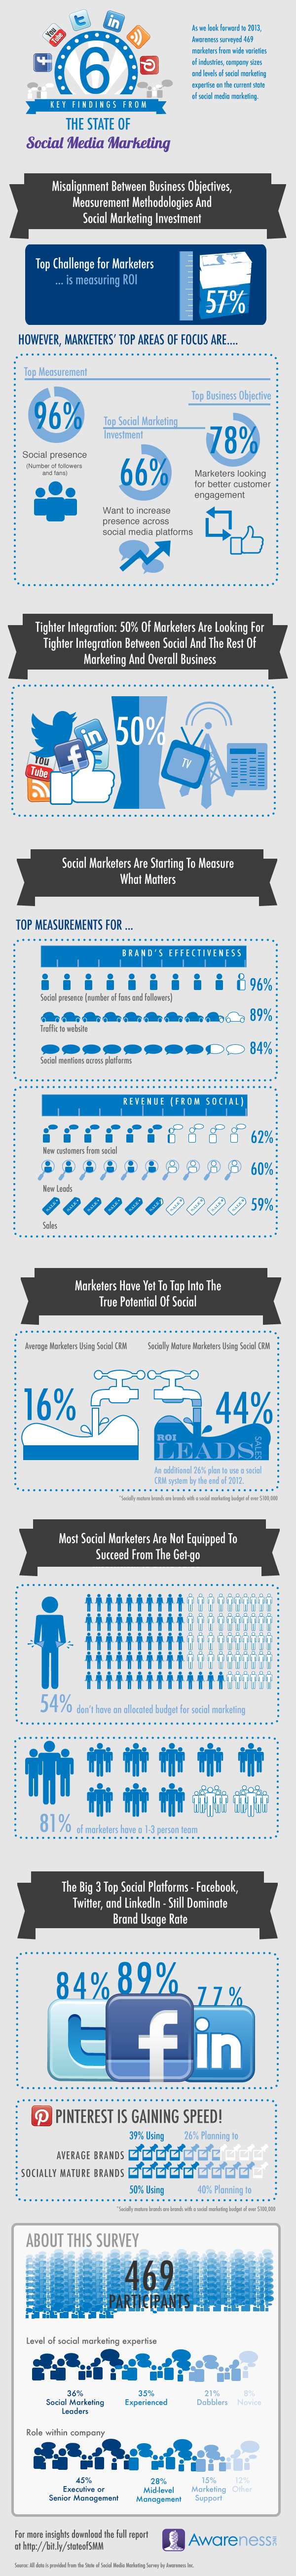 Social Marketing Report 2012-Infographic